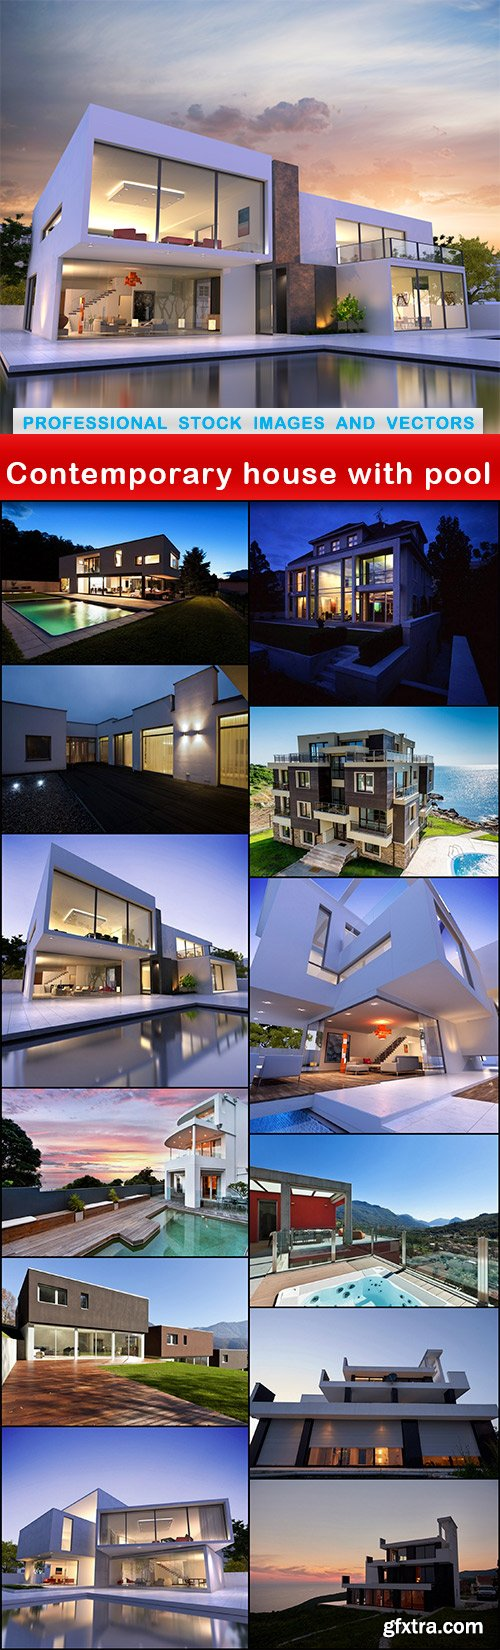 Contemporary house with pool - 13 UHQ JPEG